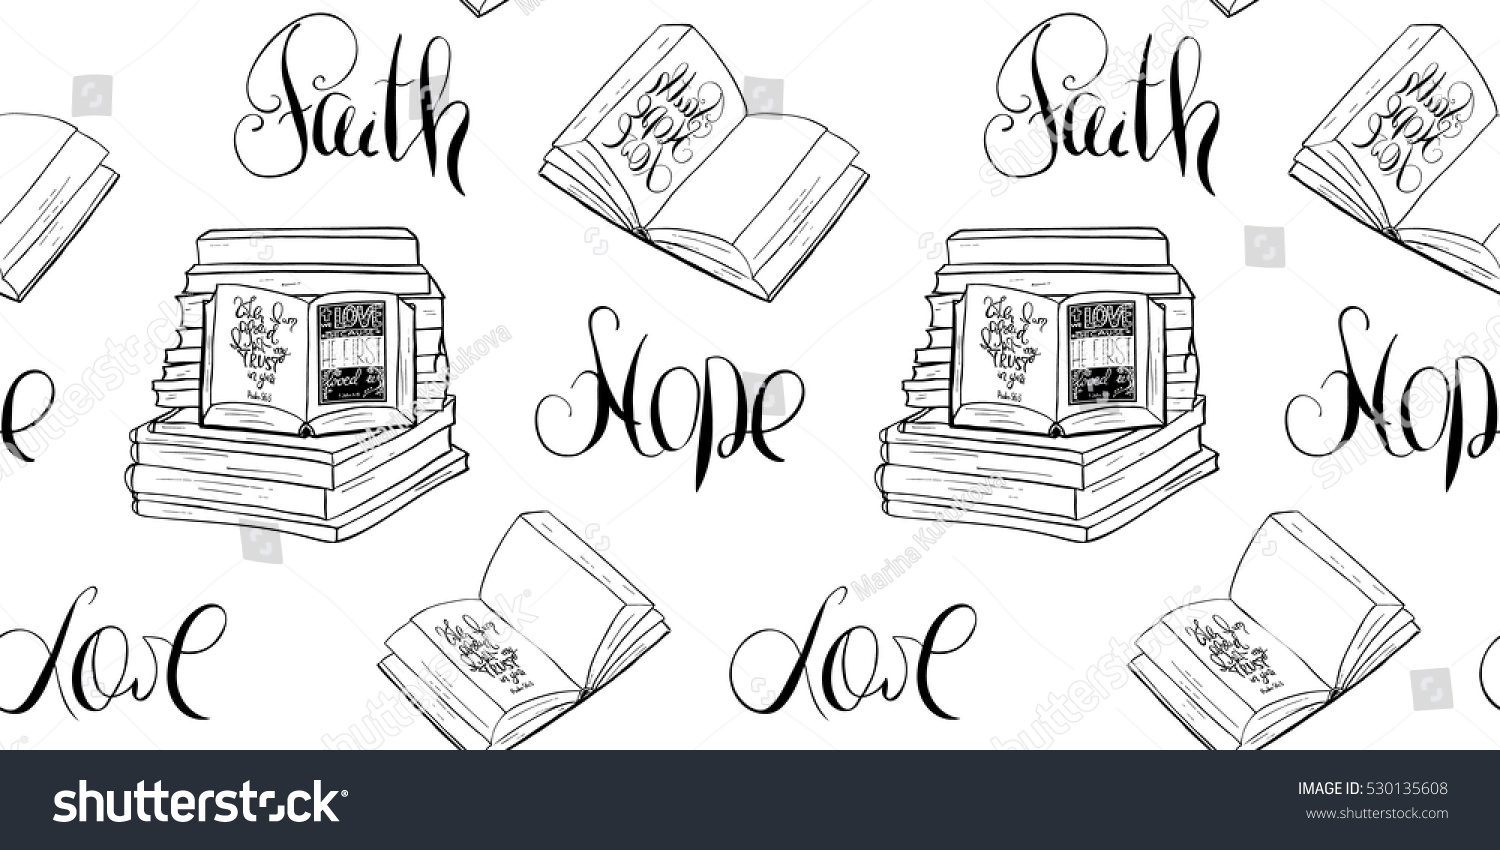 faith hope love bible lettering open book hand drawing illustration